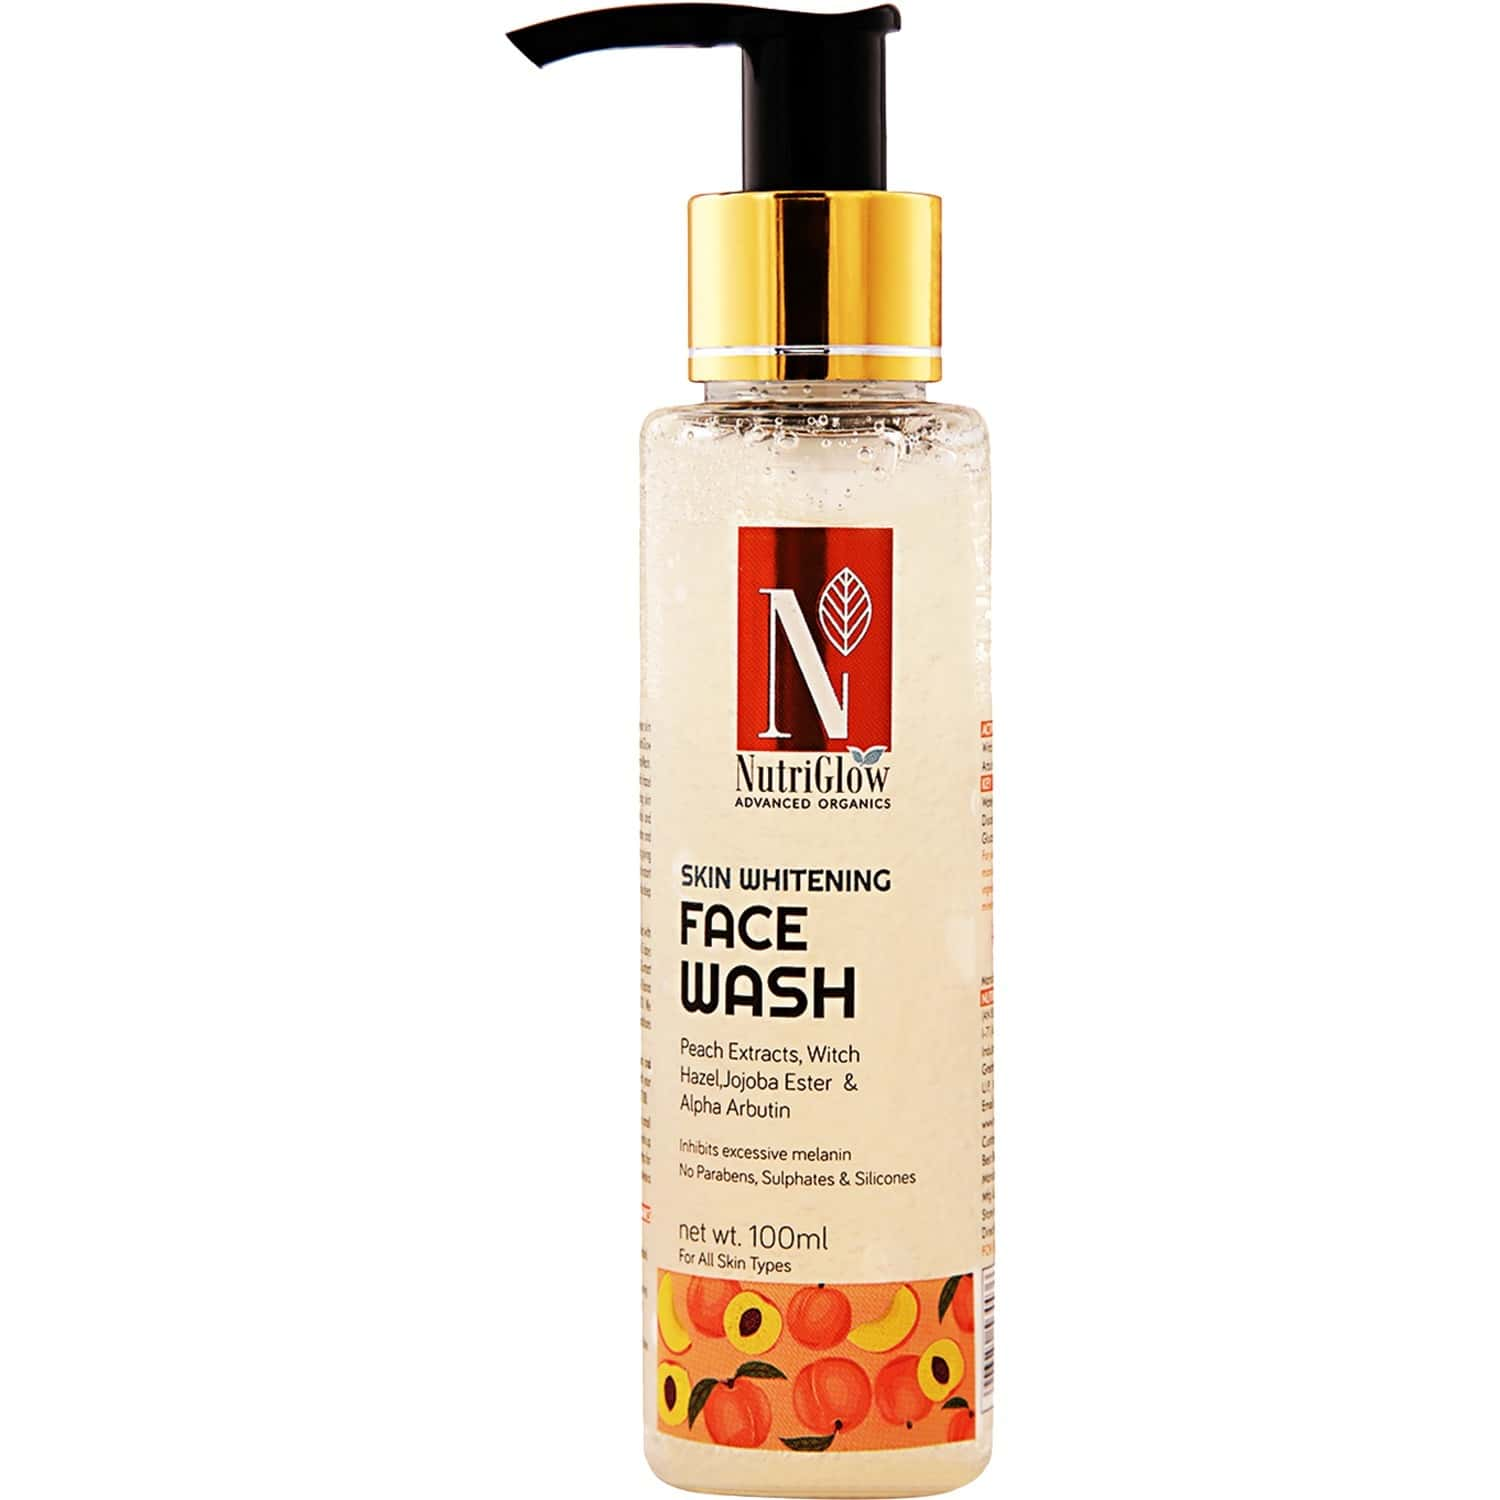 Nutriglow Advanced Organics Skin Whitening Face Wash With Peach Extracts (100 Ml ) / All Skin Types